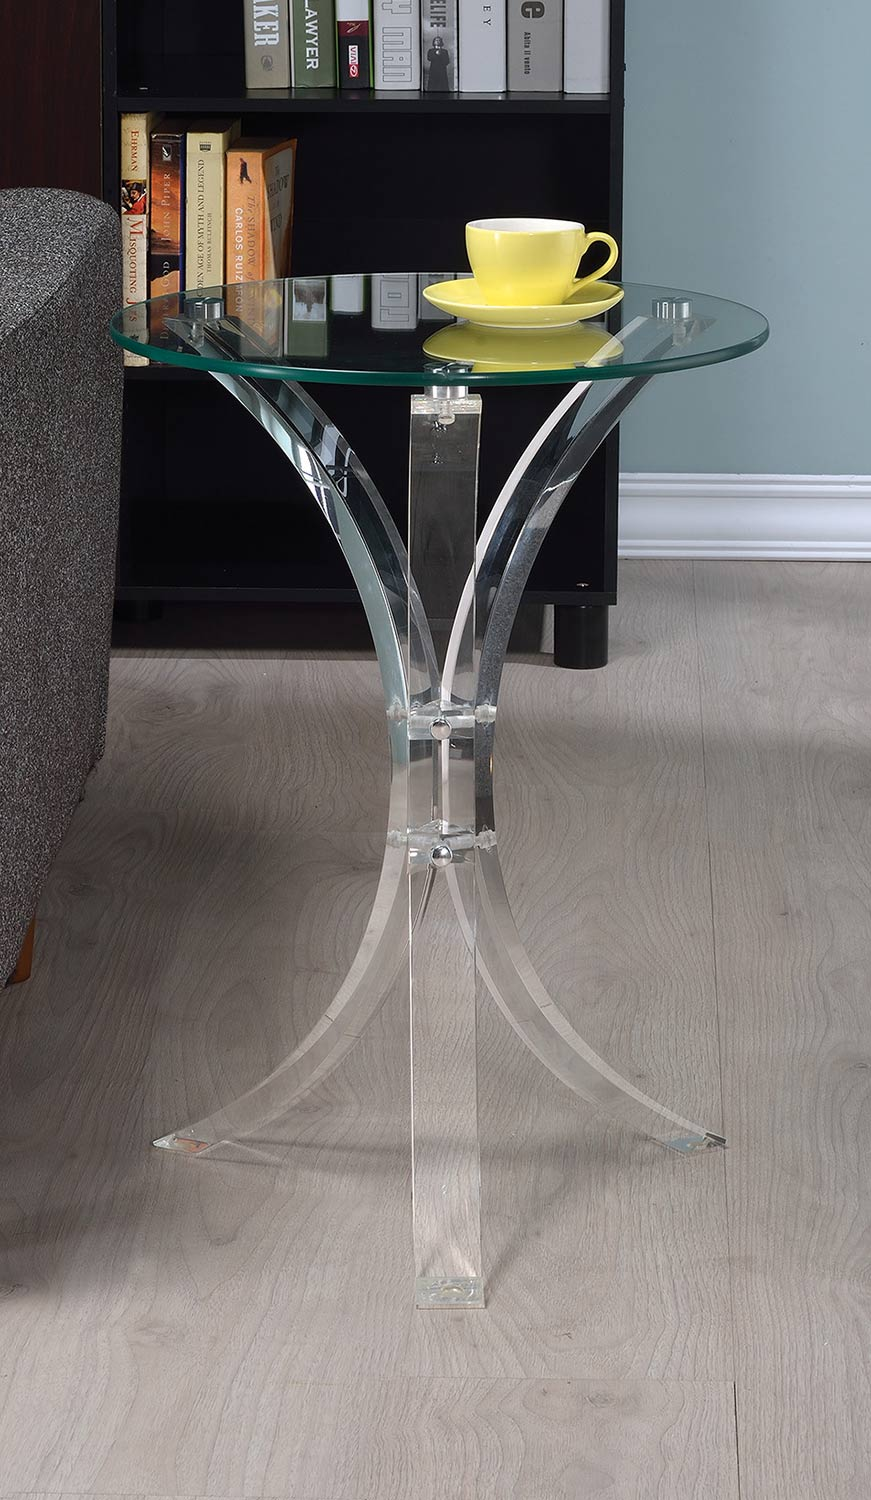 Coaster 900490 Accent Table - Clear